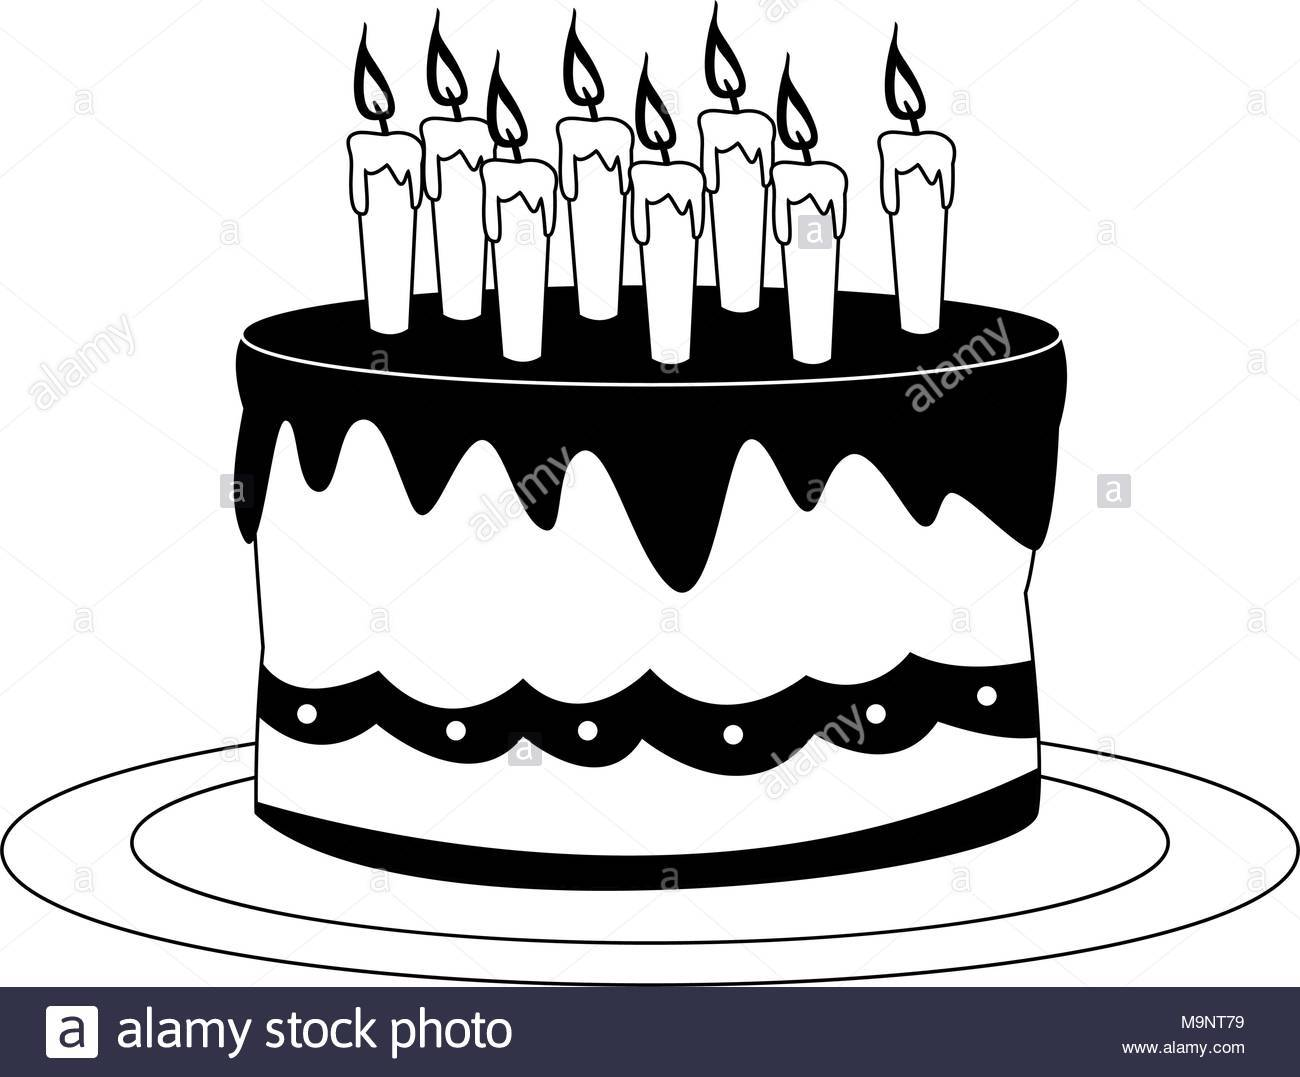 Birthday candles clipart black and white 6 » Clipart Portal.